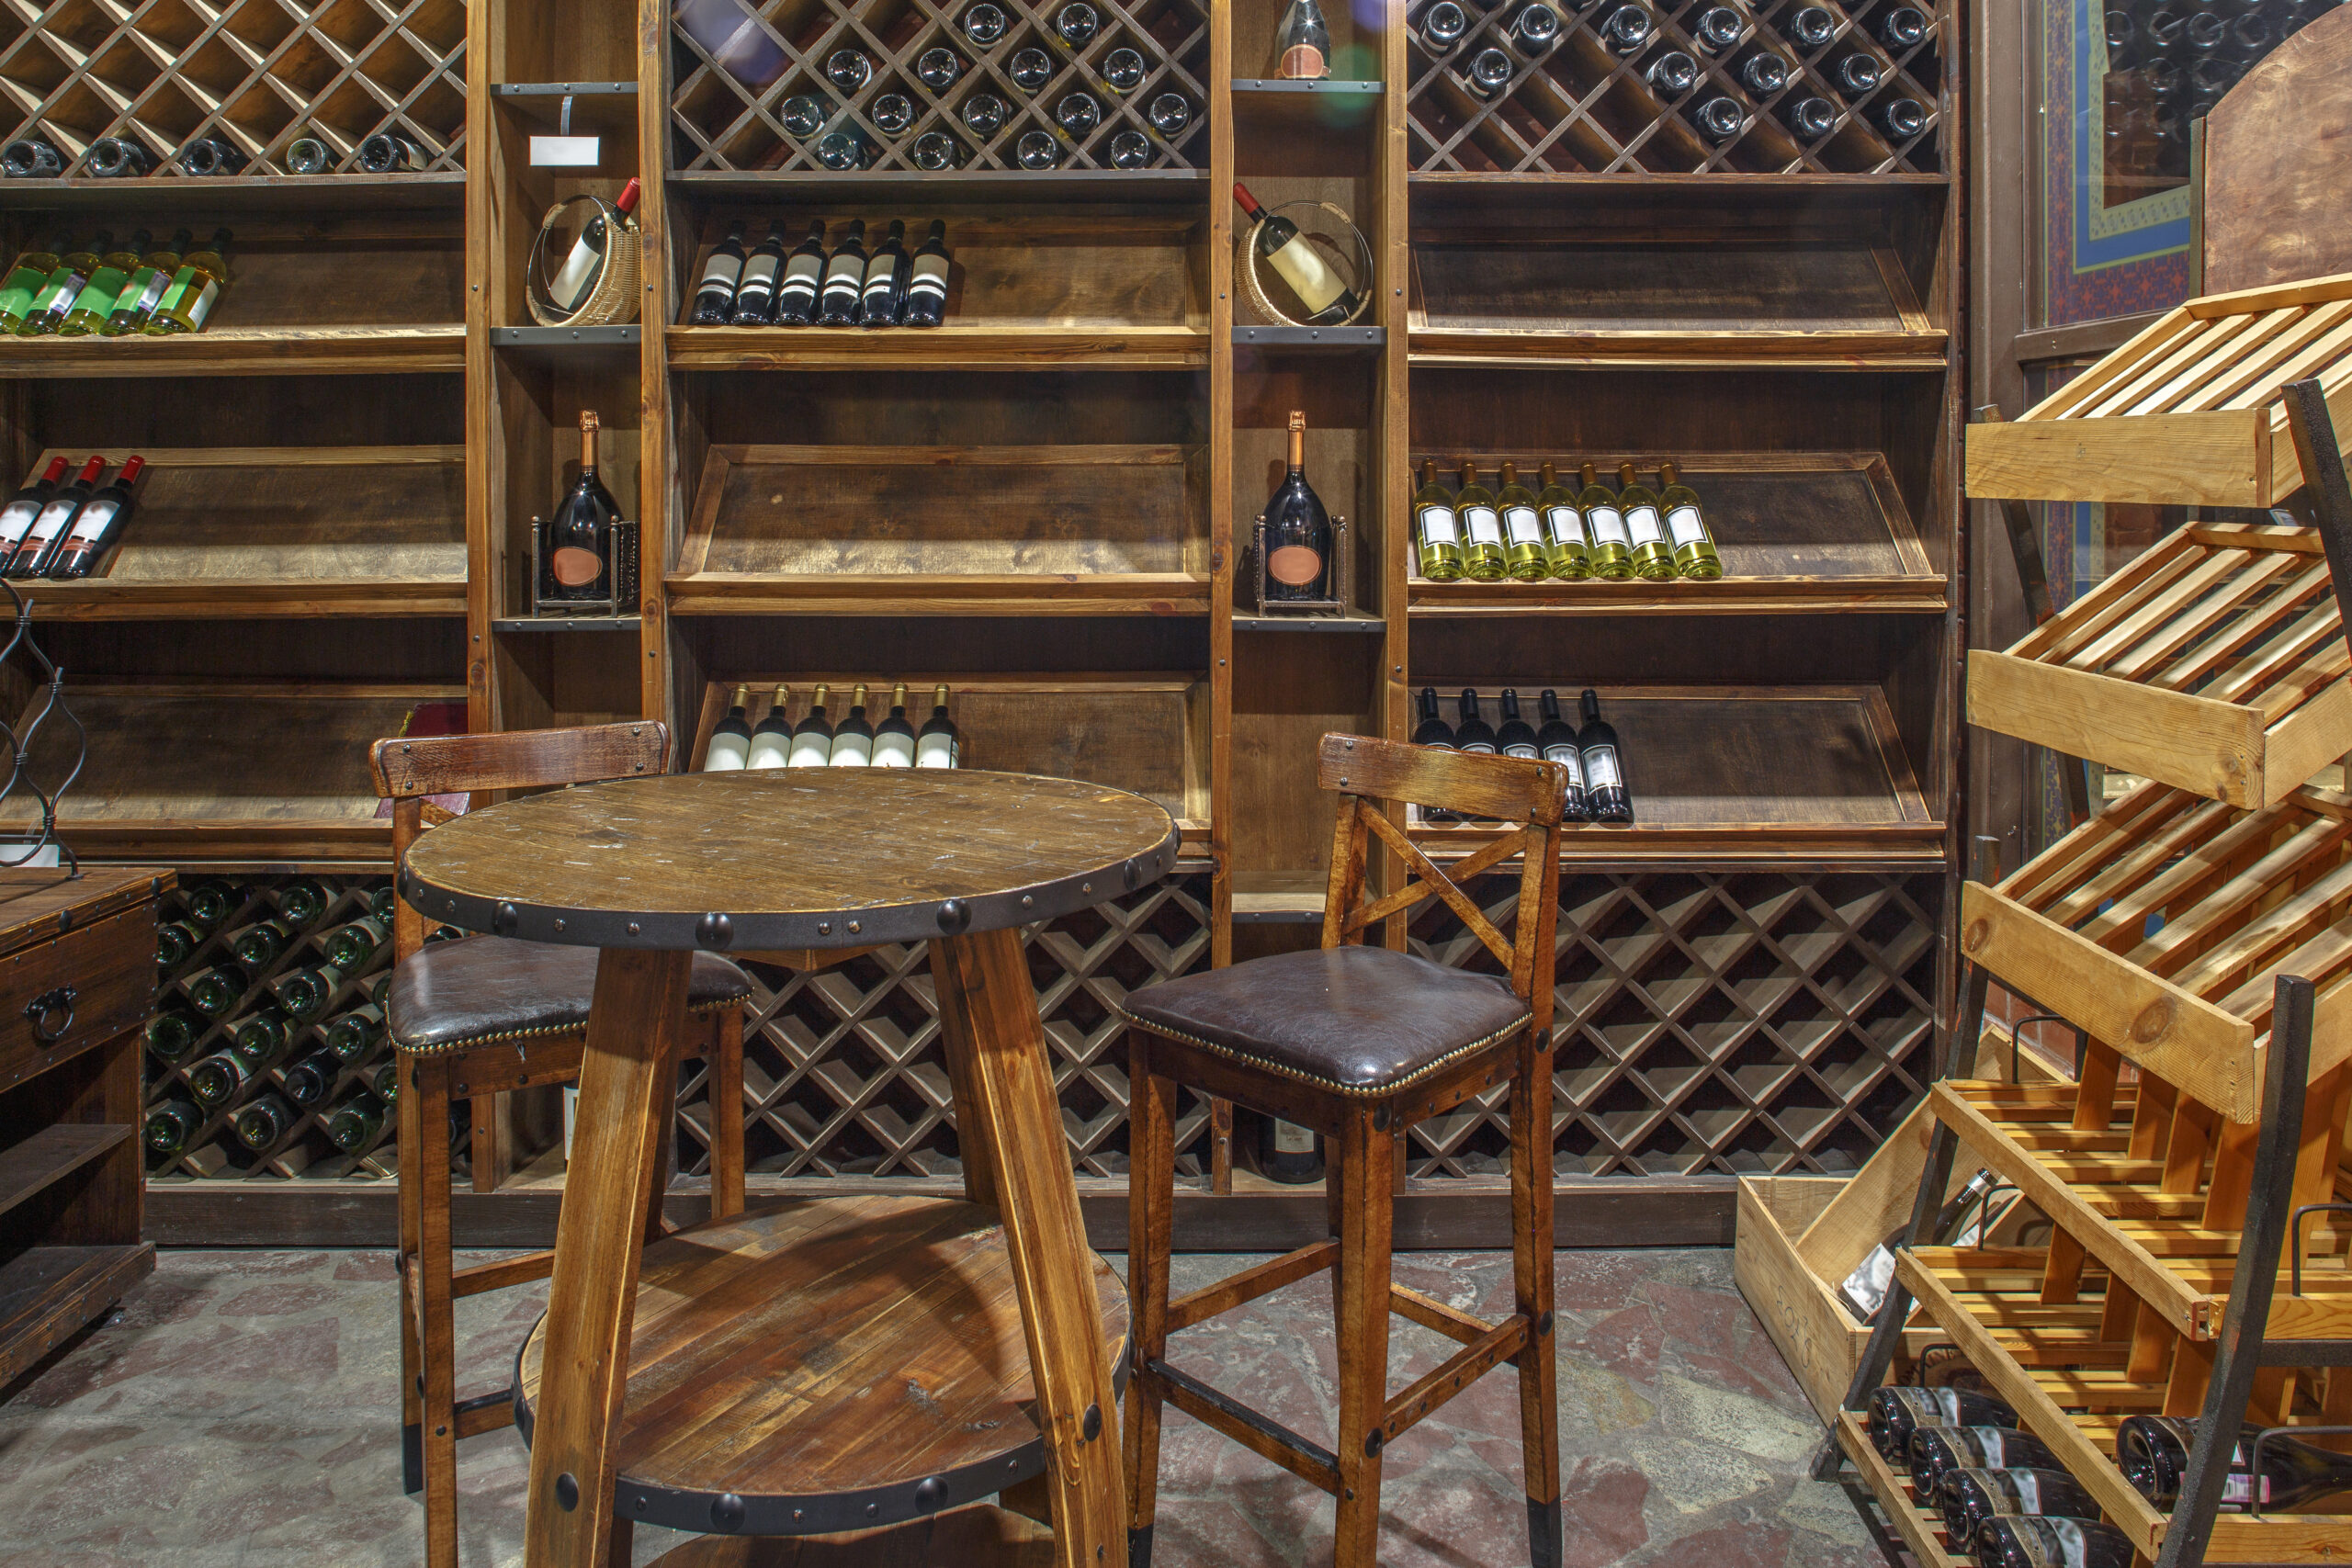 Photo of the inside of a wine tasting room featuring wine bottle of wooden racks.